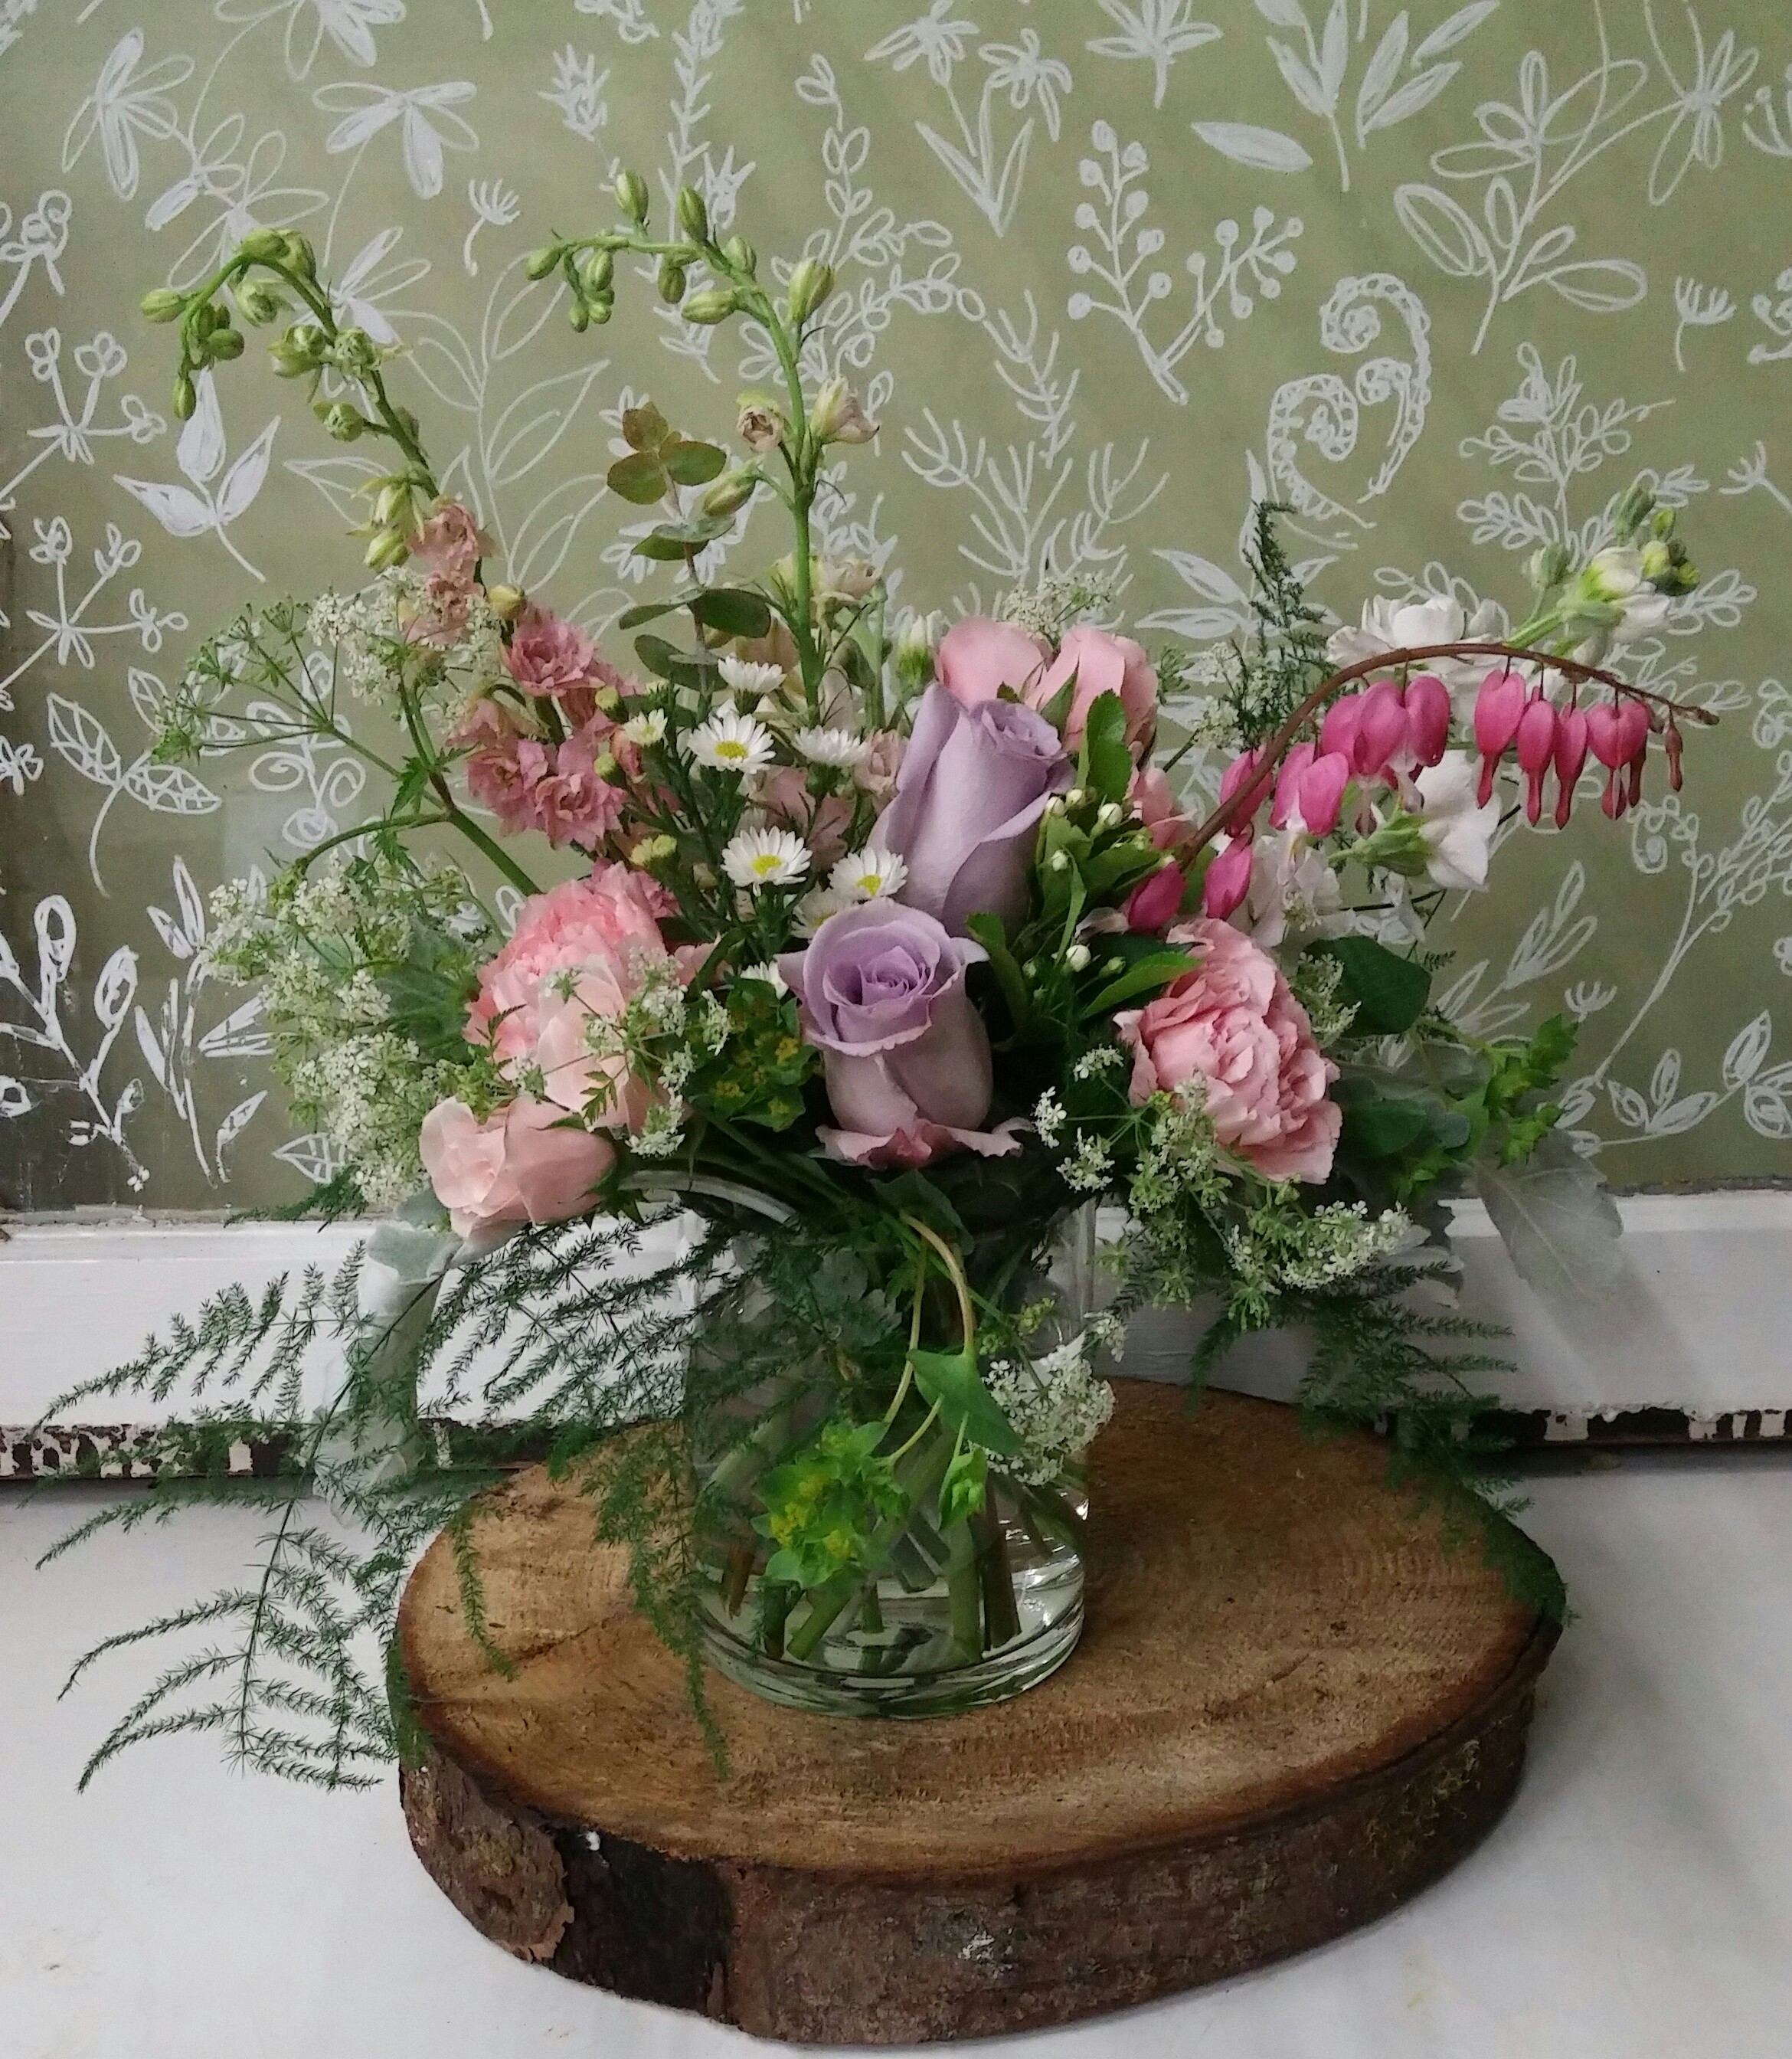 9. Pale lavender and pink summer bouquet with bleeding heart